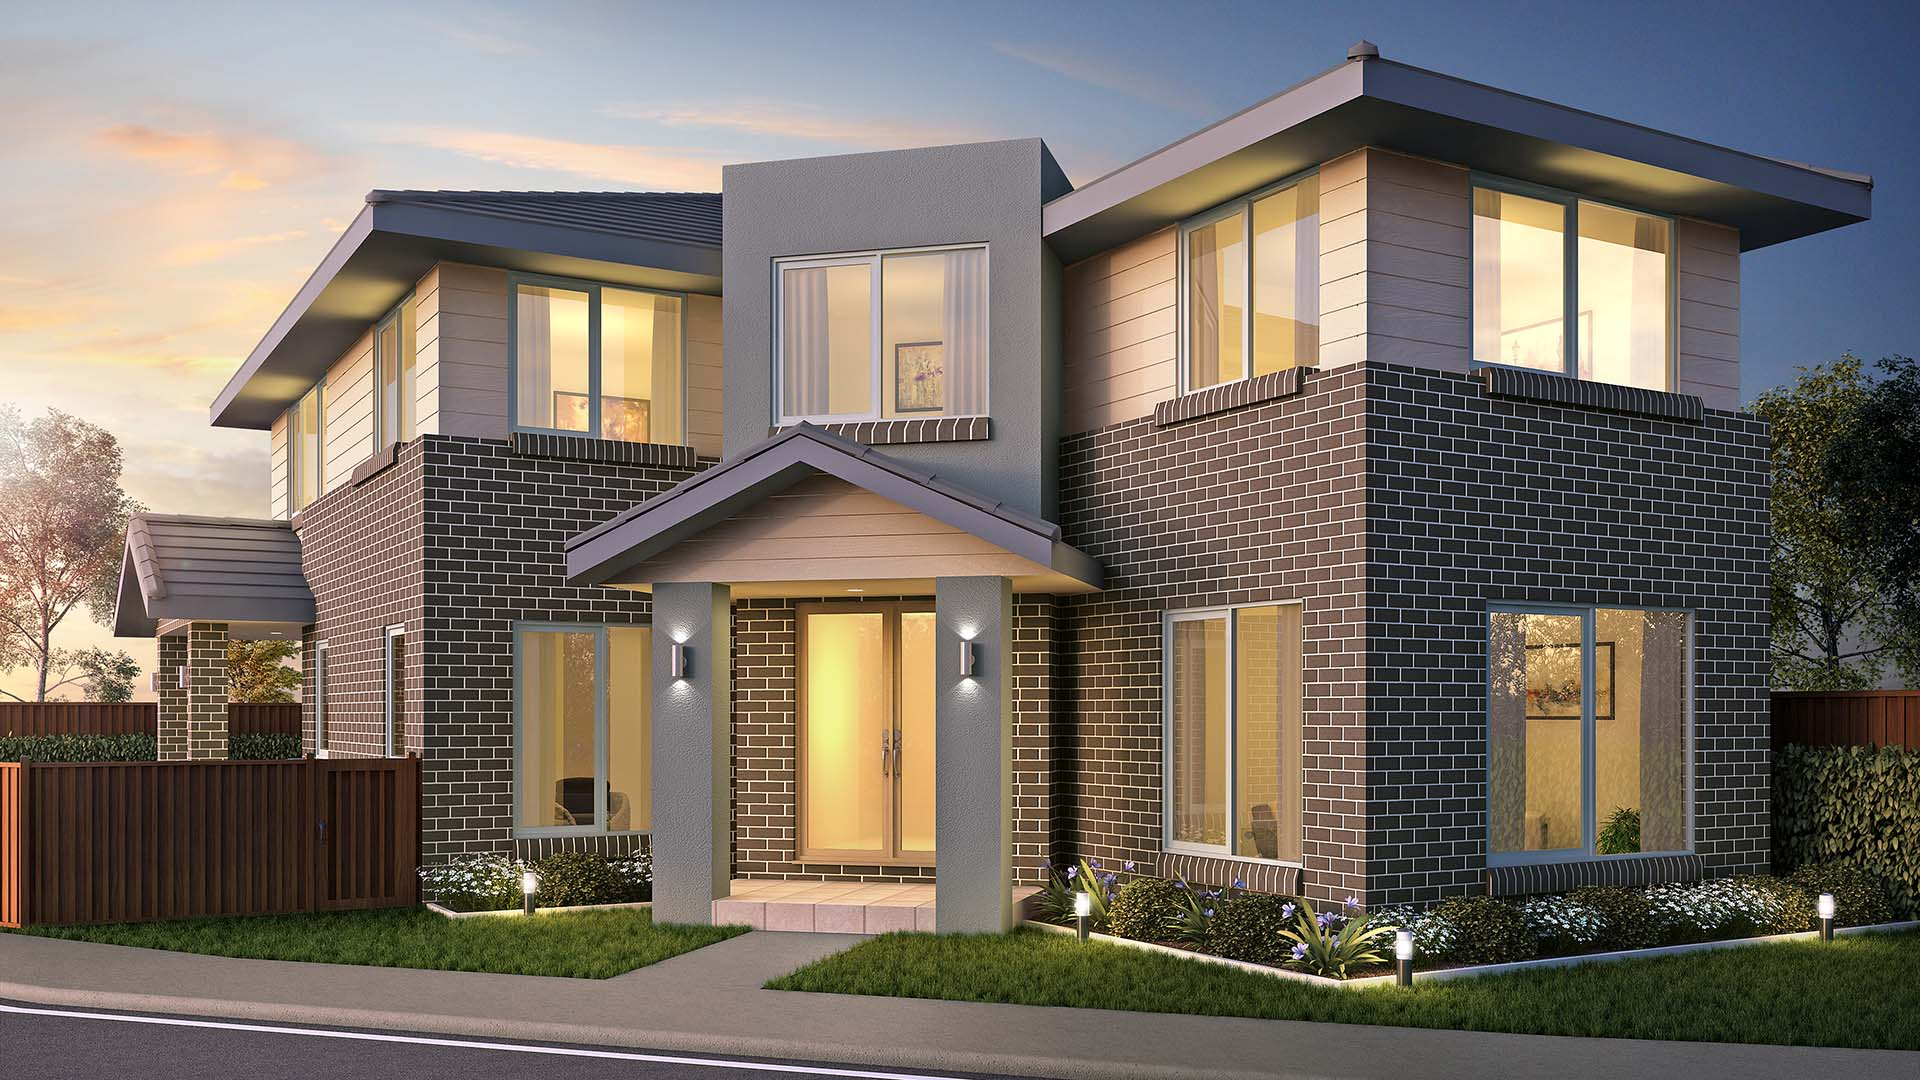 Lot 22 Dalmatia Ave Perspective